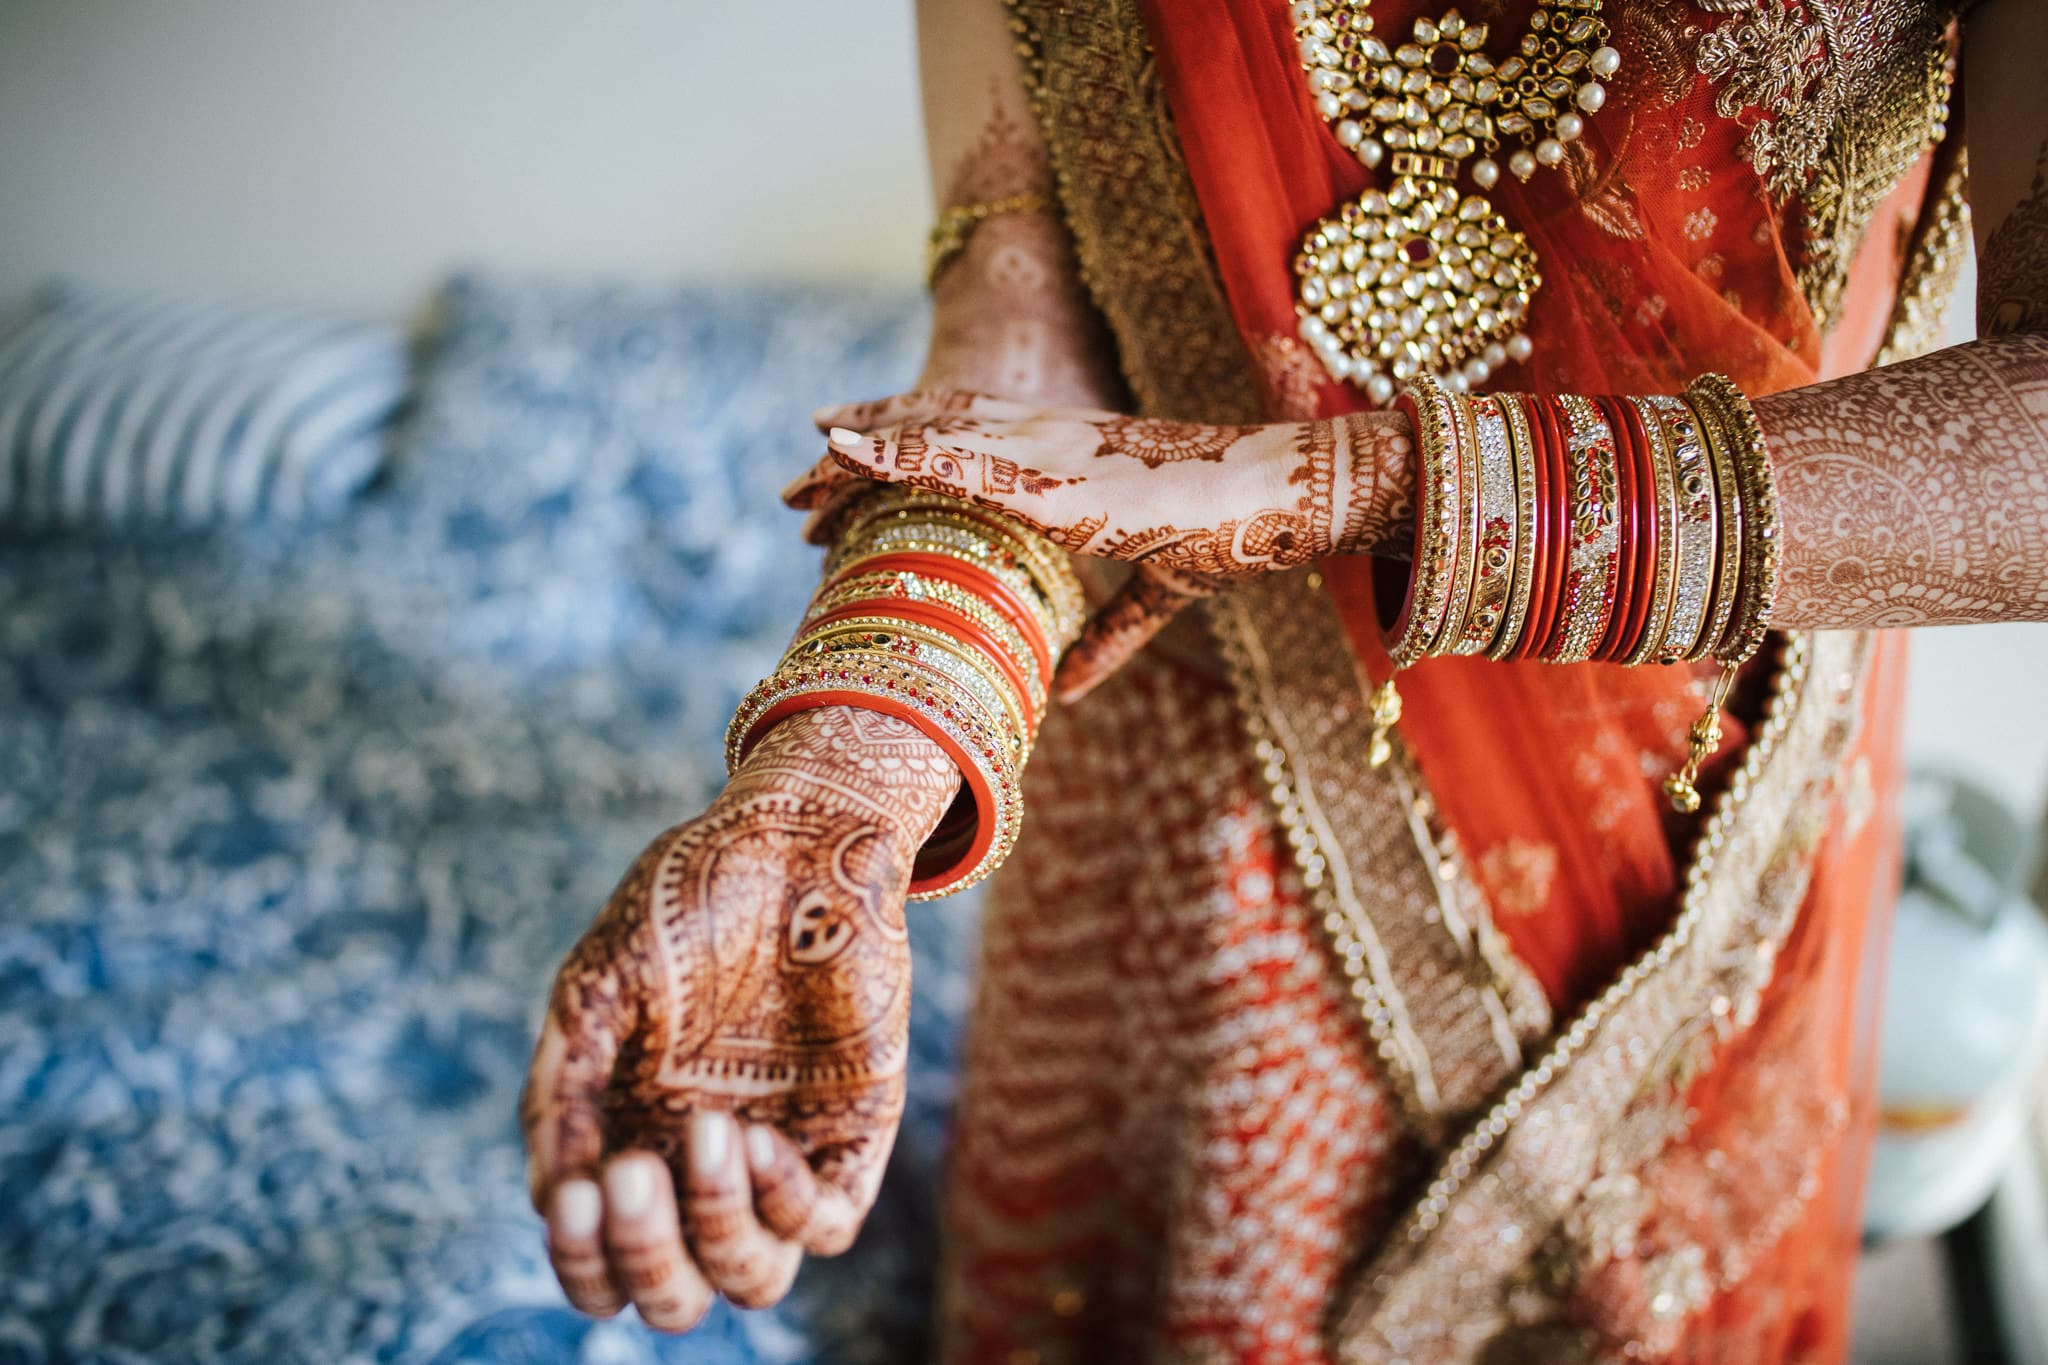 There was no particular style that appealed to Claire, she just knew that her Indian bridal lehenga must be red.